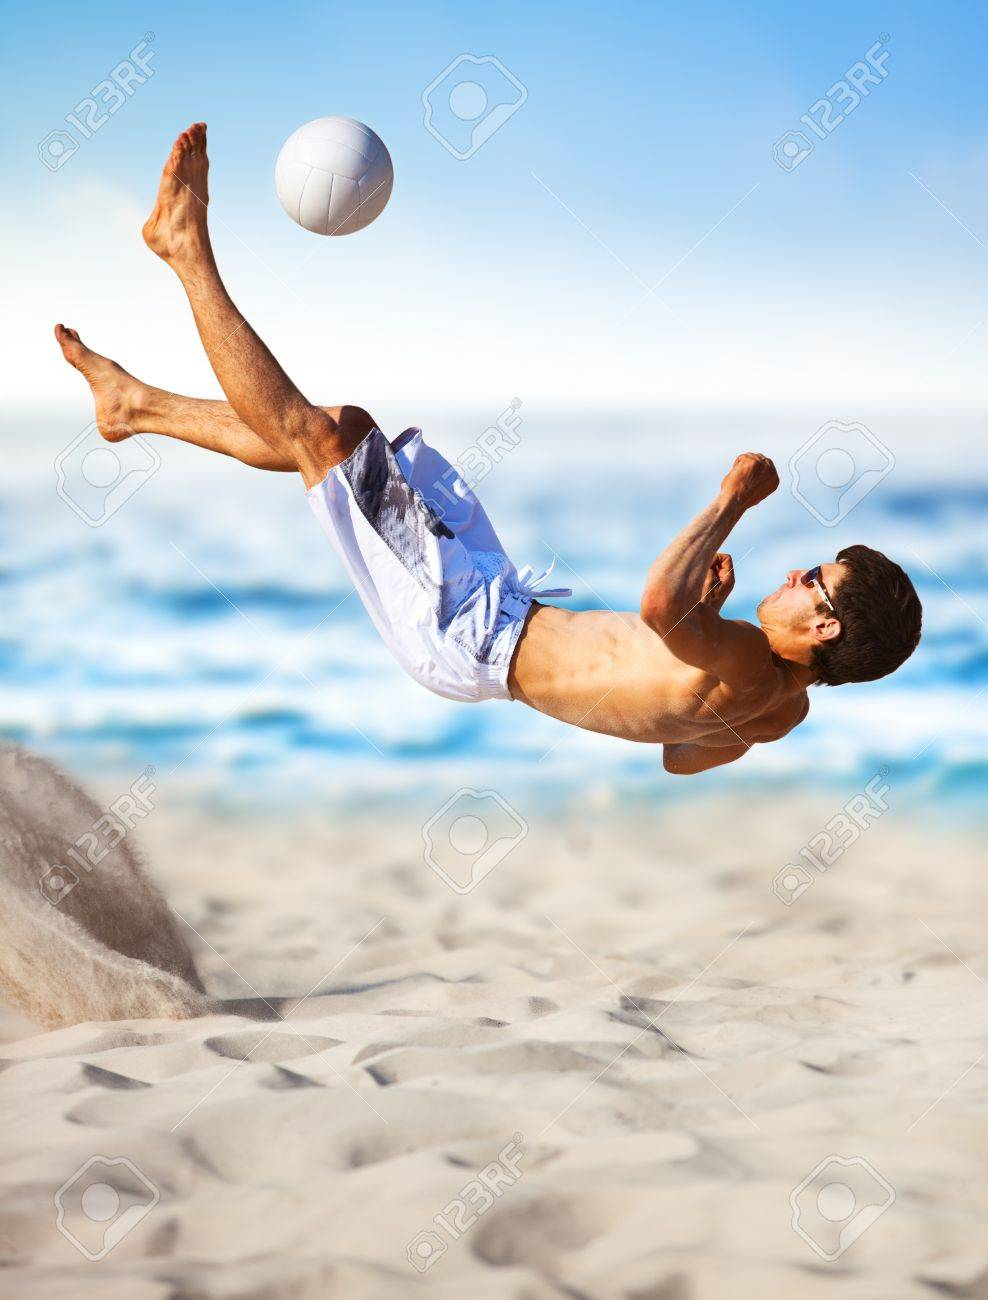 Young man playing soccer on beach. - 7442743